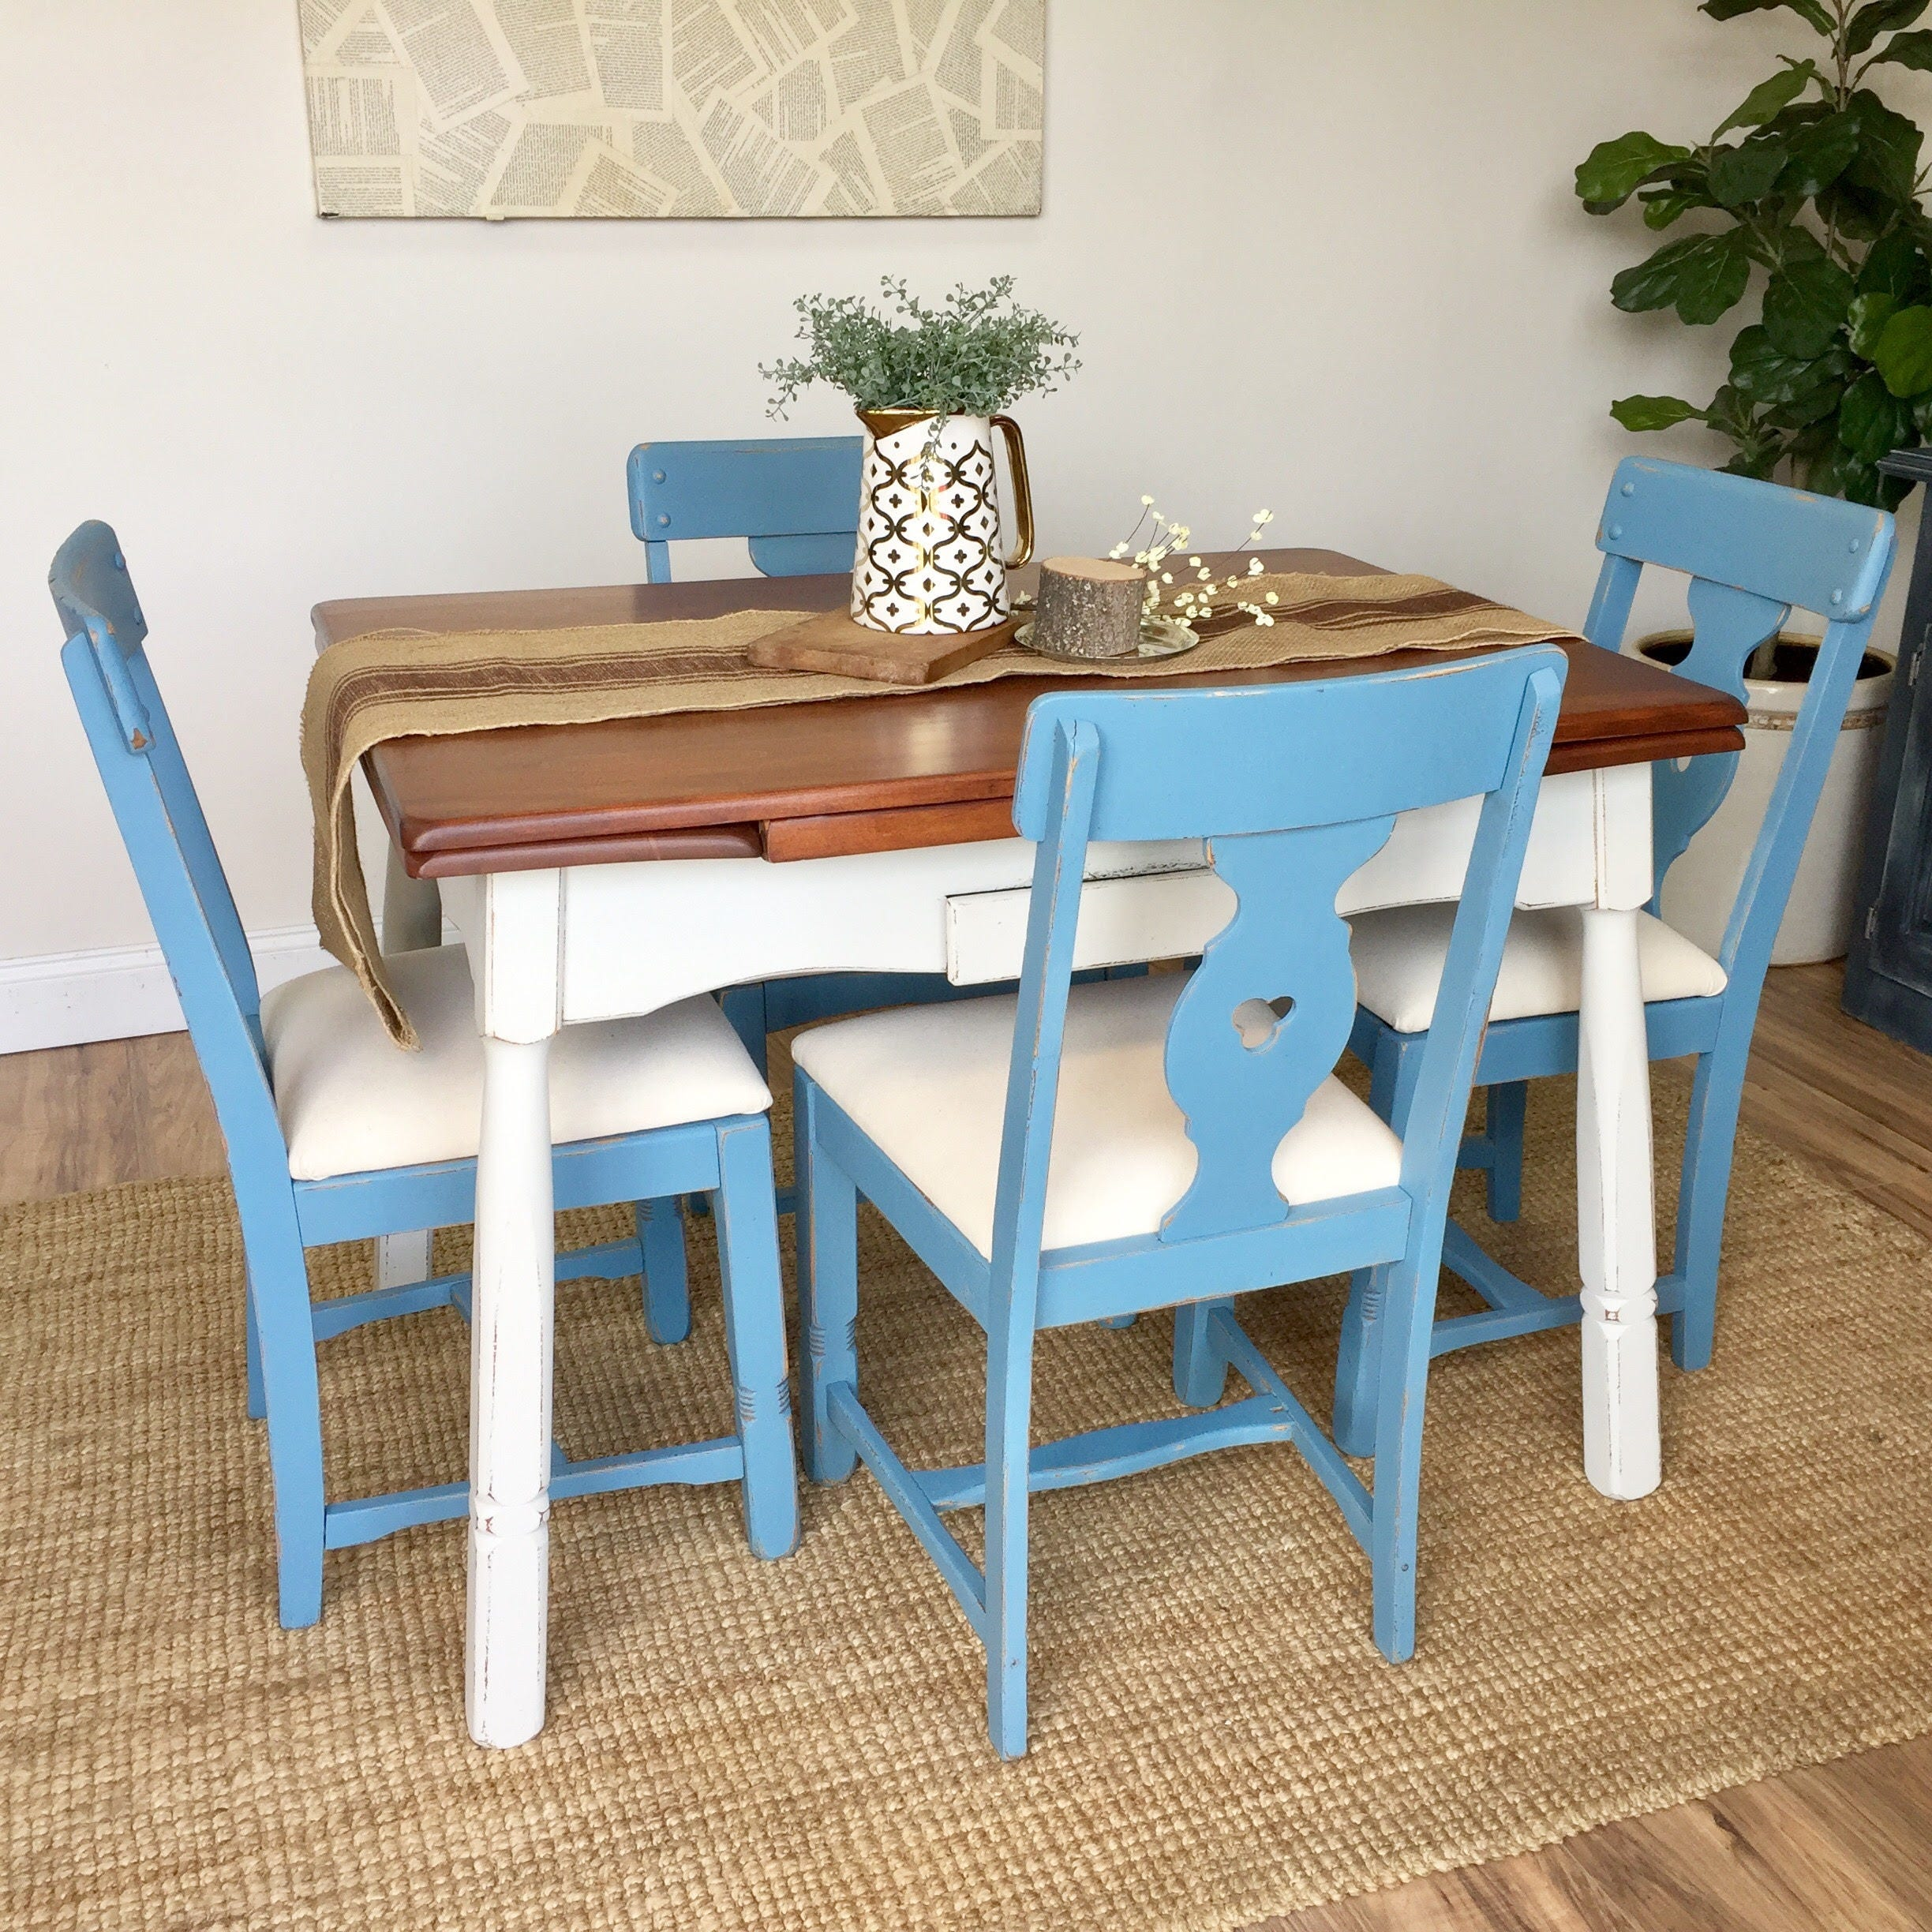 Small Dining Set - Wooden Dining Table - Small Wooden Table ...